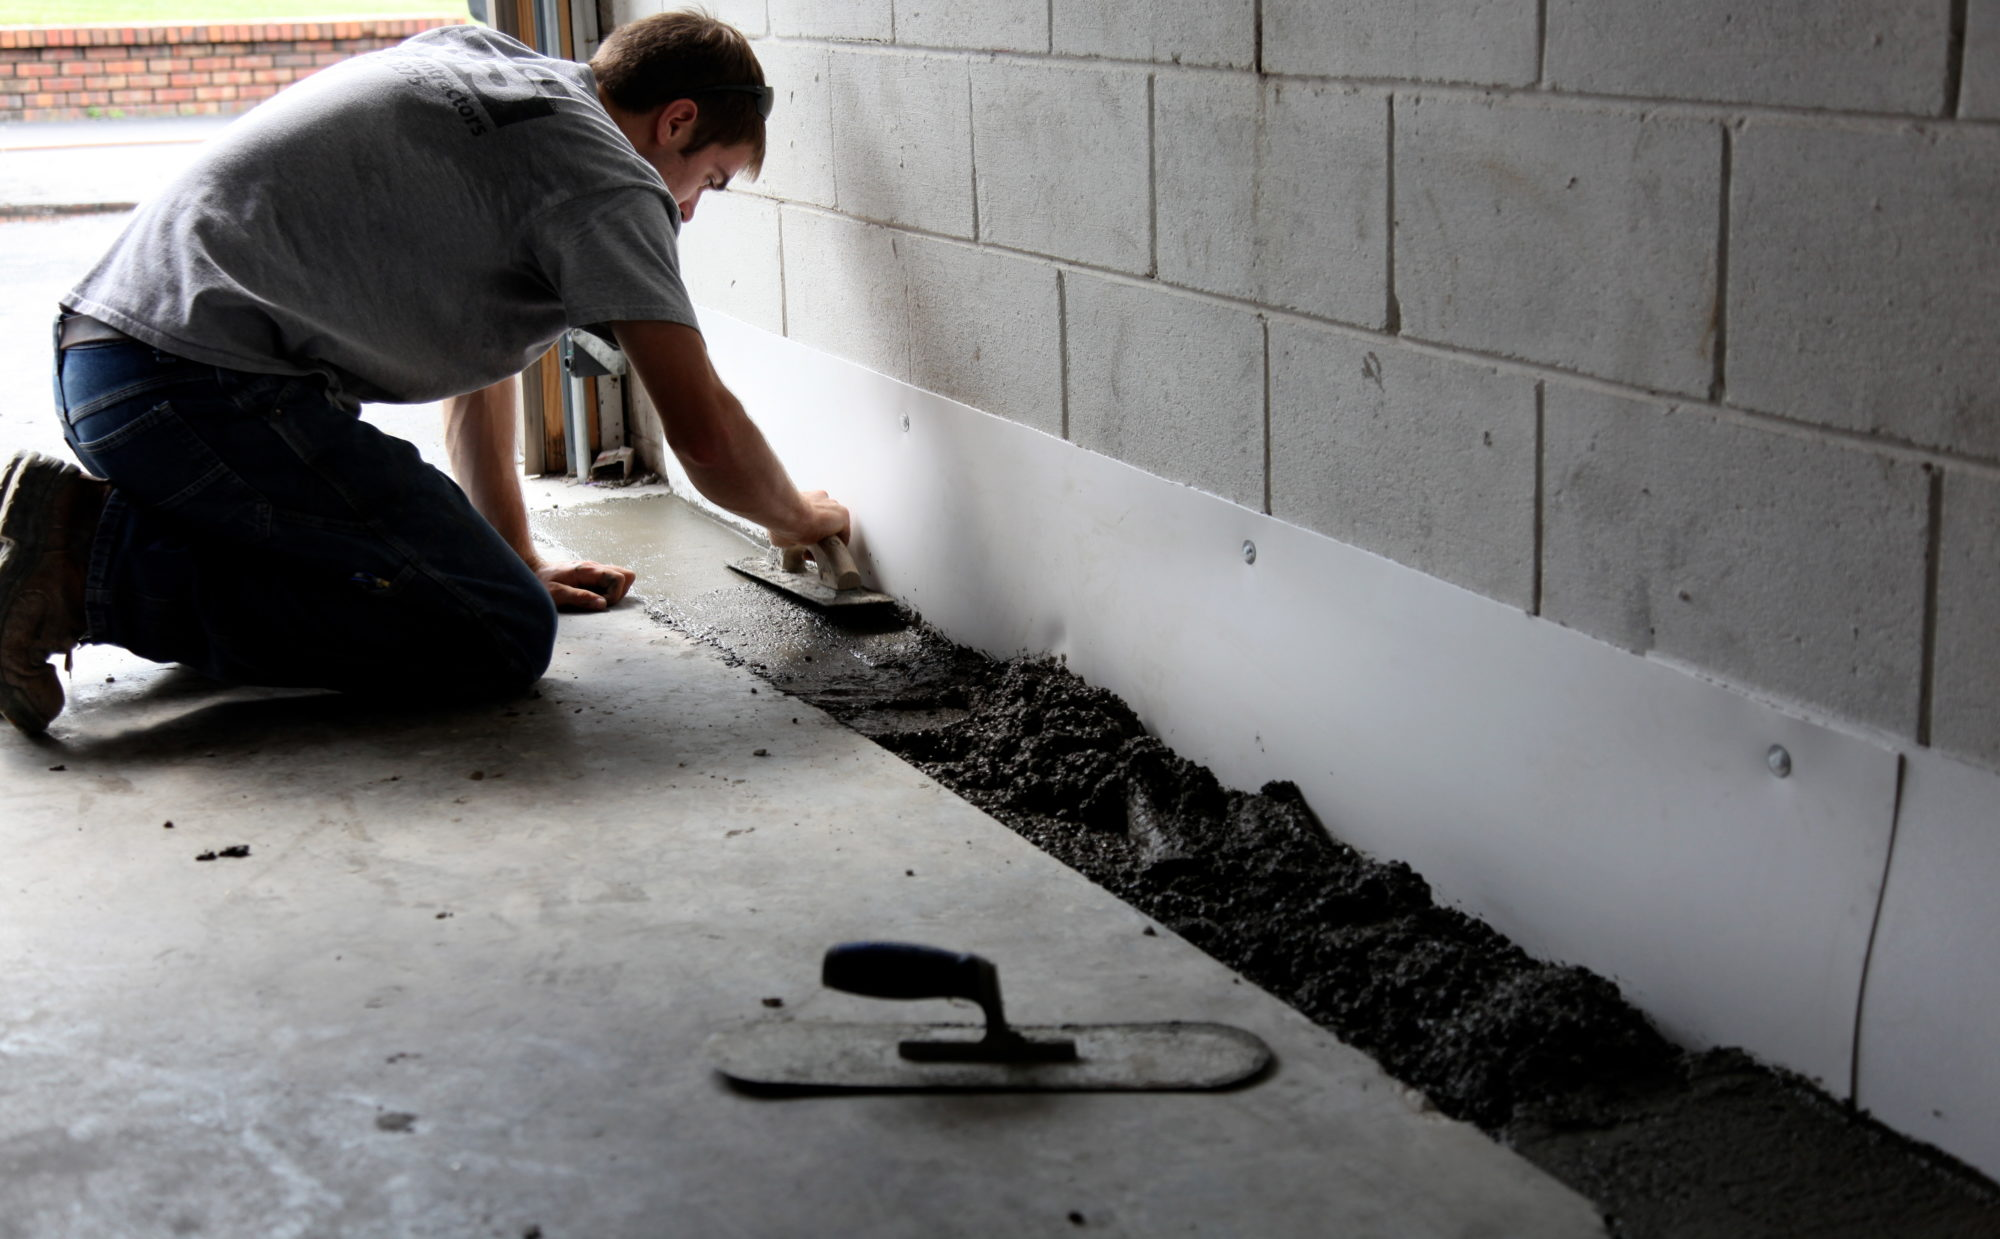 United Structural Systems, Inc. is shown waterproofing the interior of a home by covering drain pipes that are connected to a sump pump.